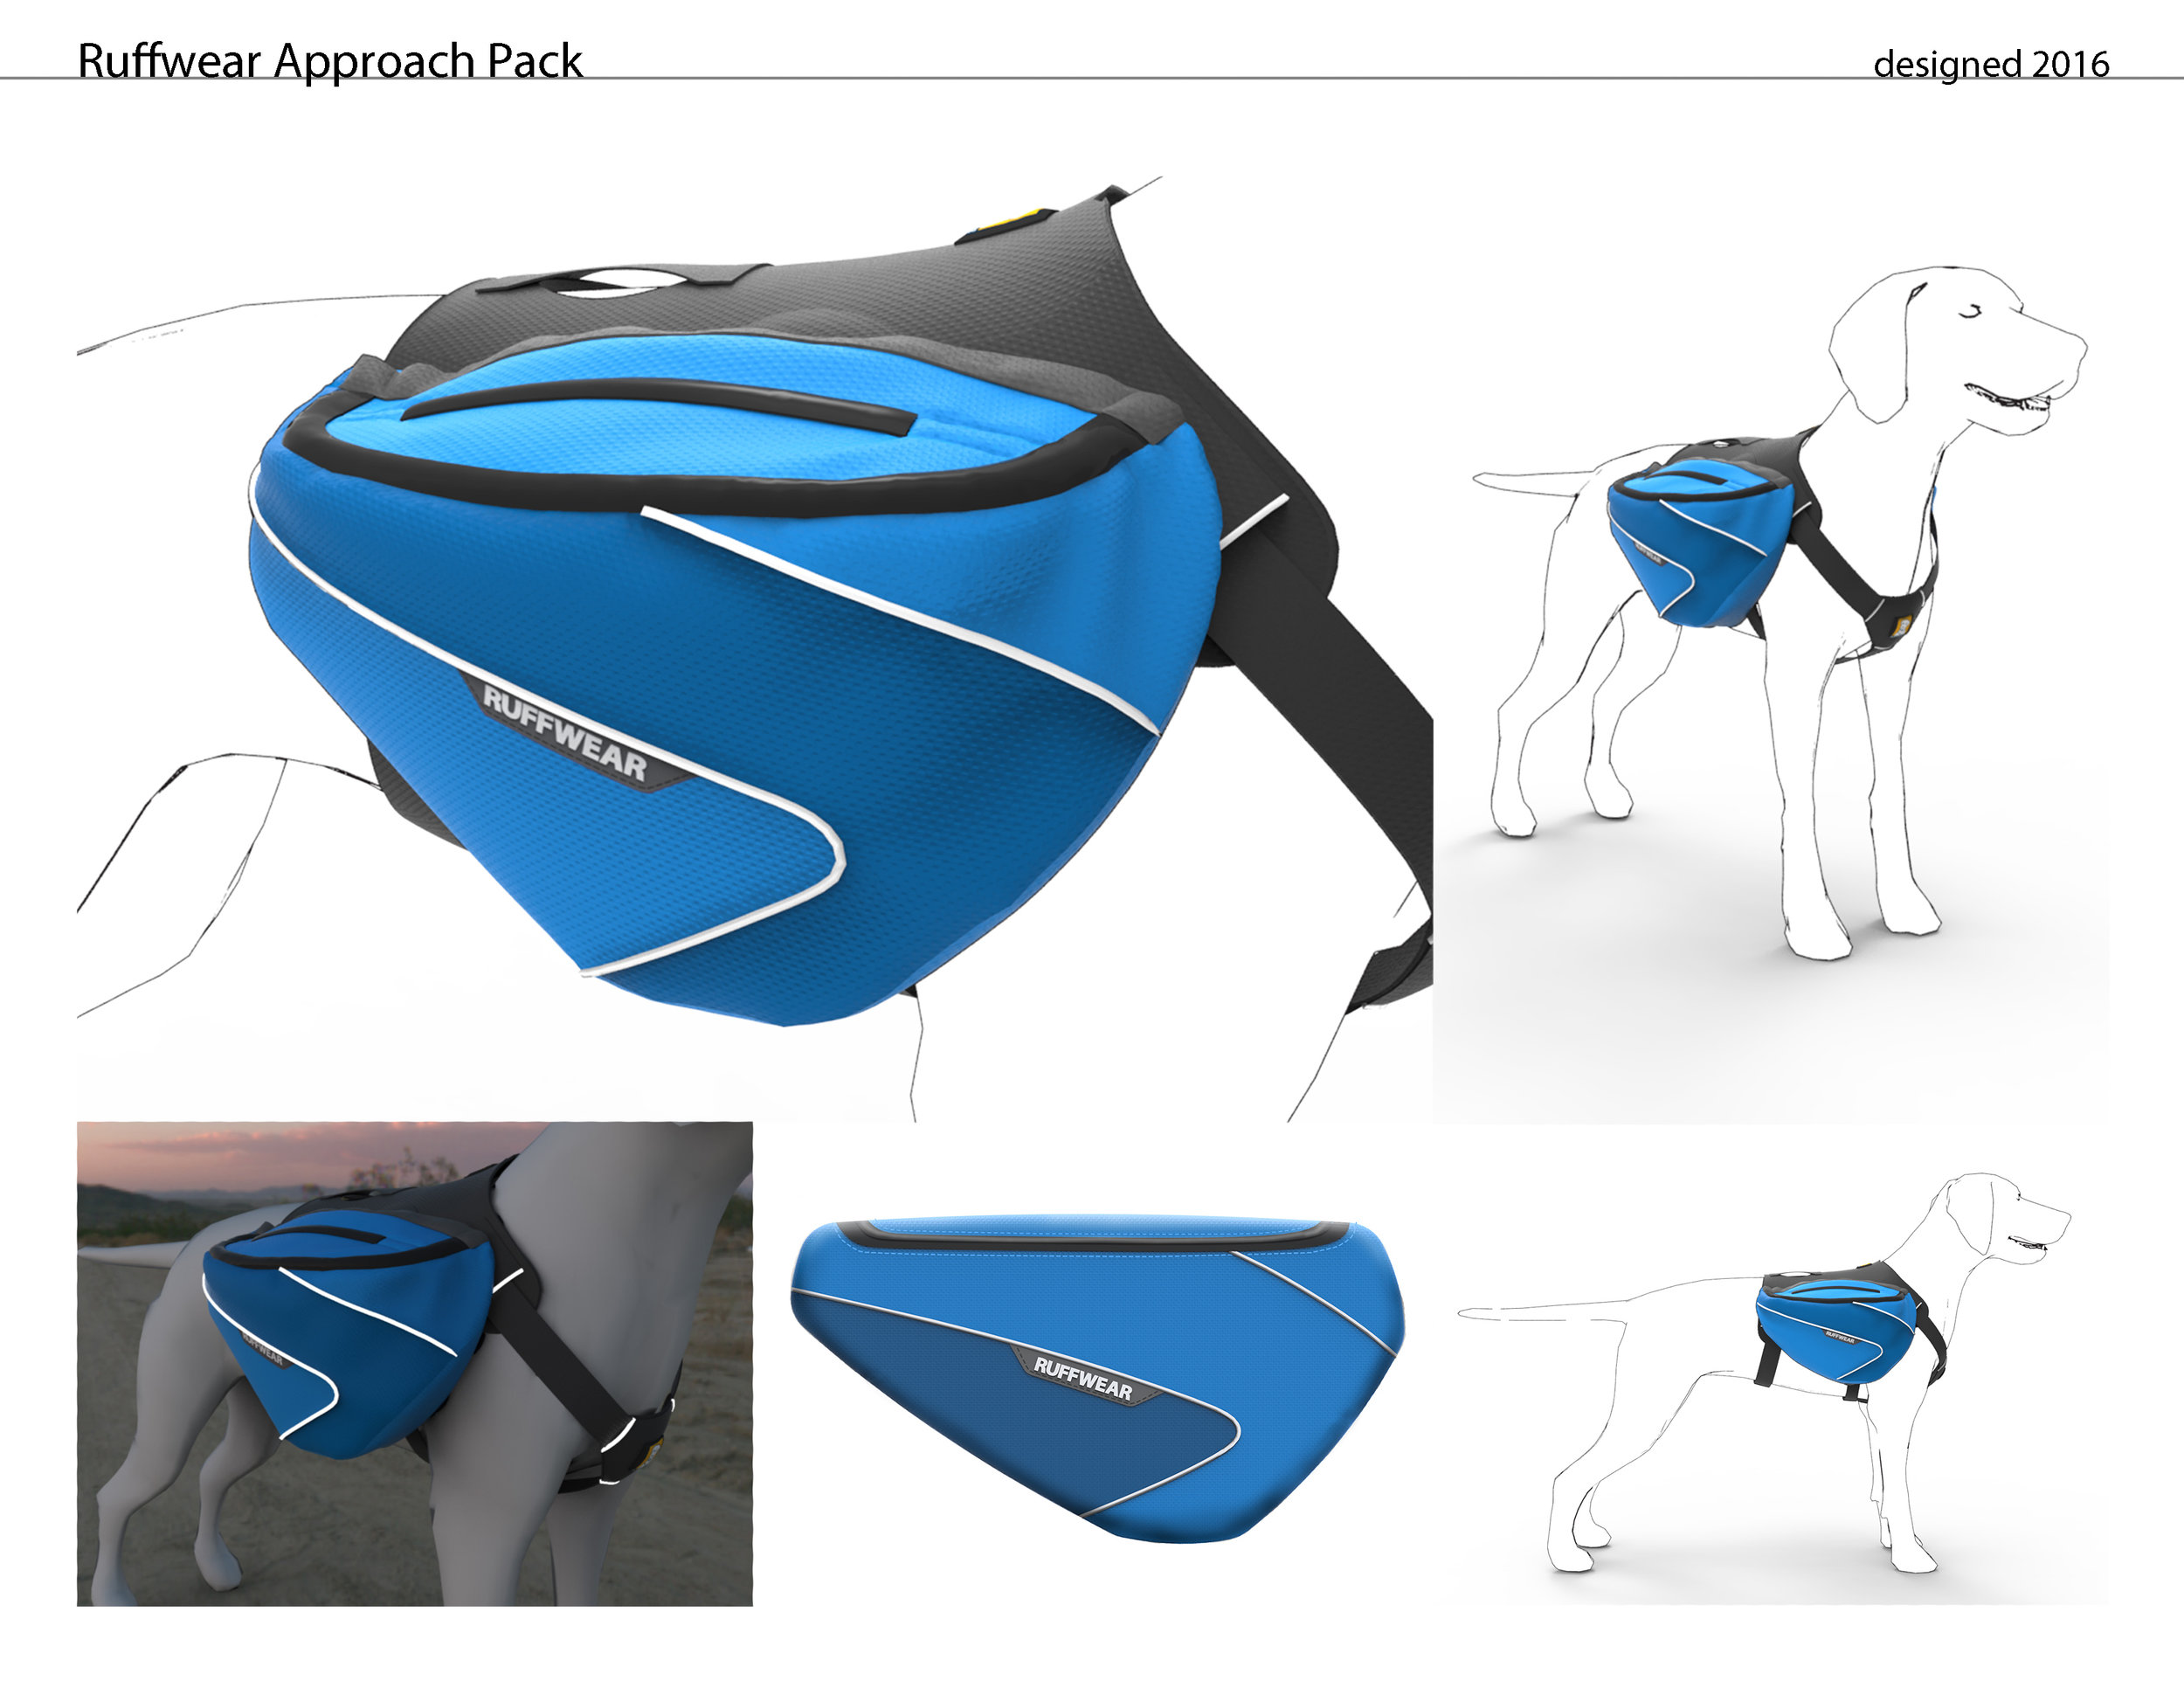 Ruffwear-Approach-Pack.jpg